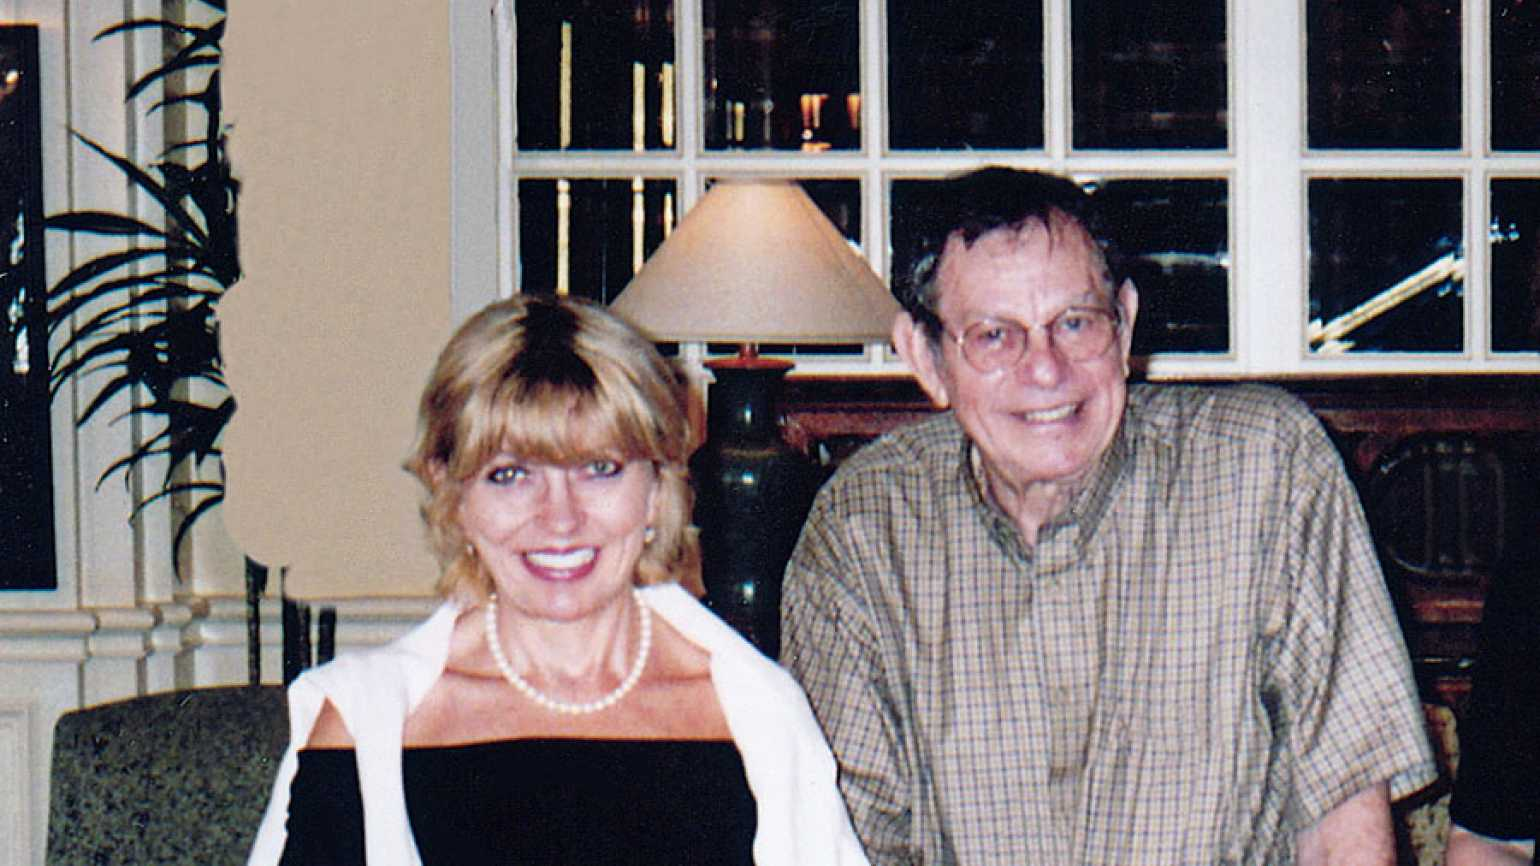 Kathy Schendle and her father